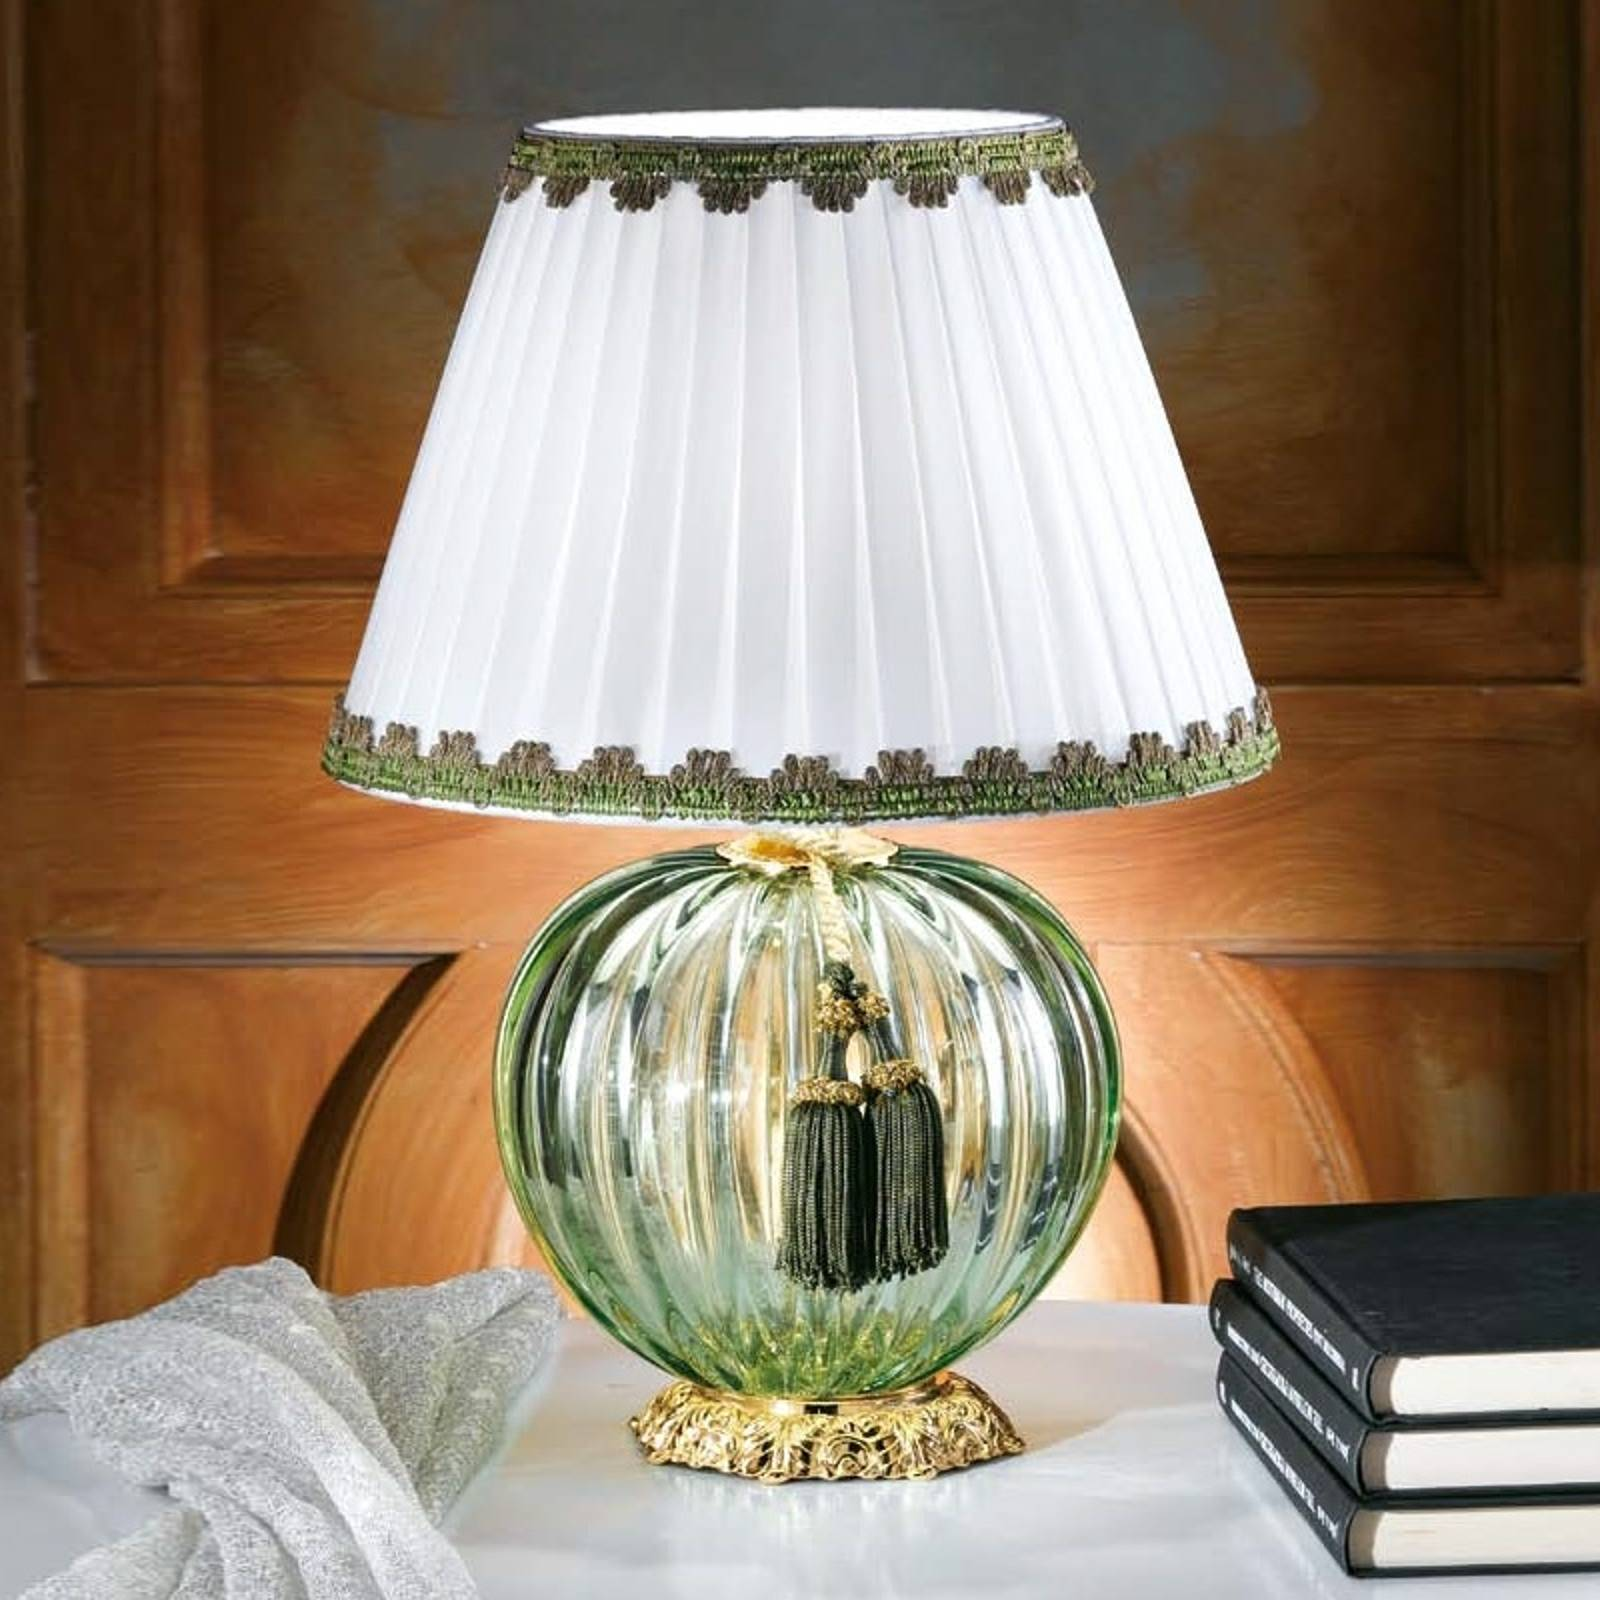 Maureen handsome table lamp with Murano glass from Masiero